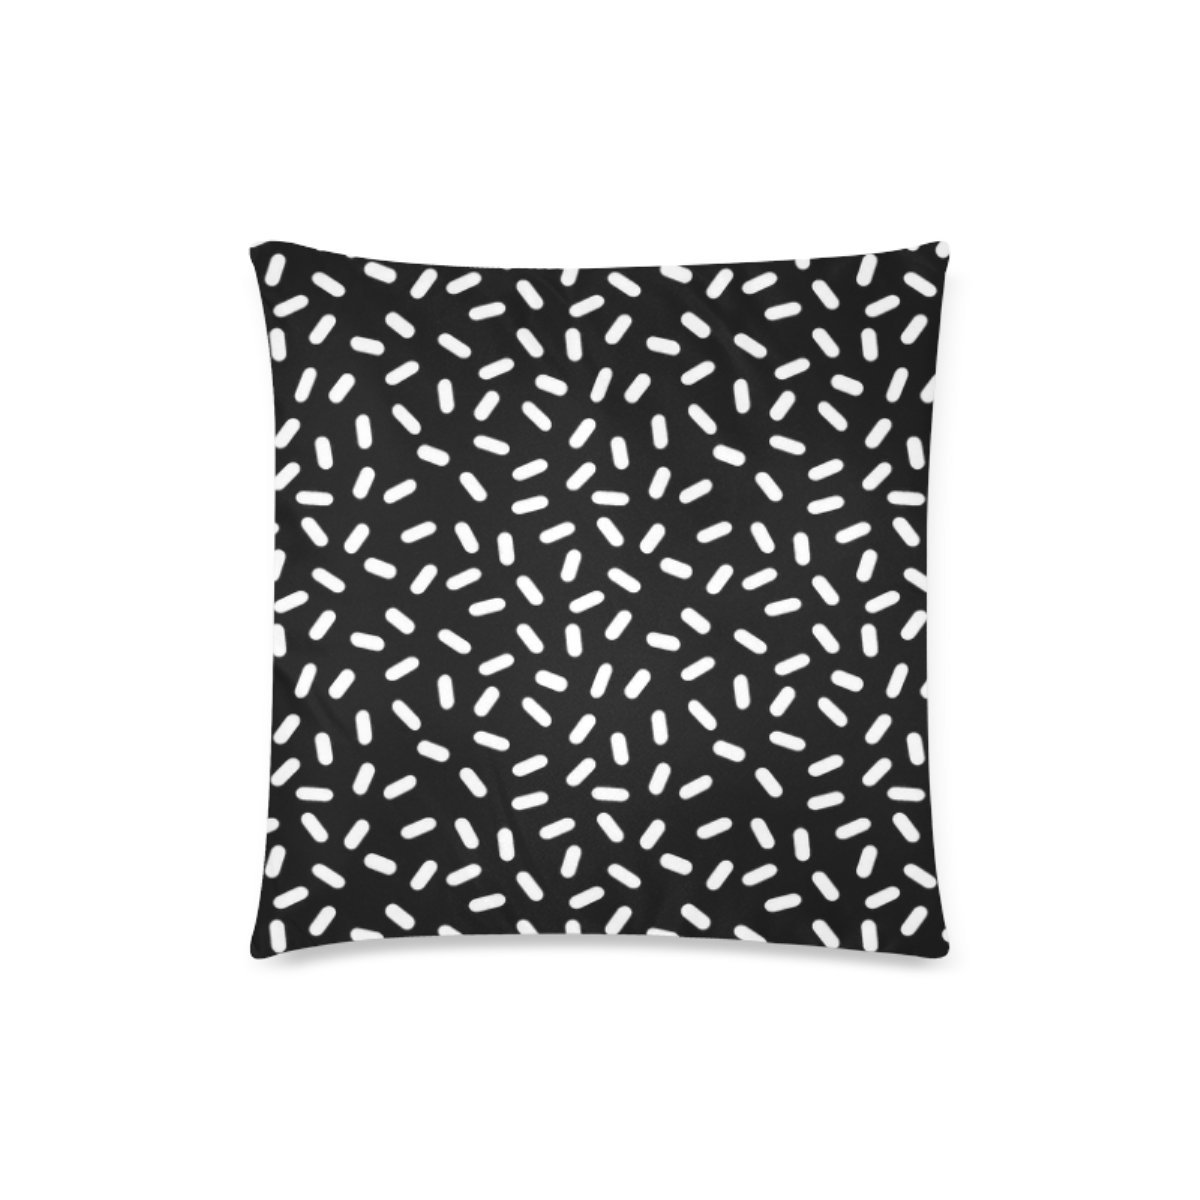 Custom Bingo Black And White Cushion Cases Zippered Throw Pillow Covers 18 by 18 Inches by BEAYCUSHIONS